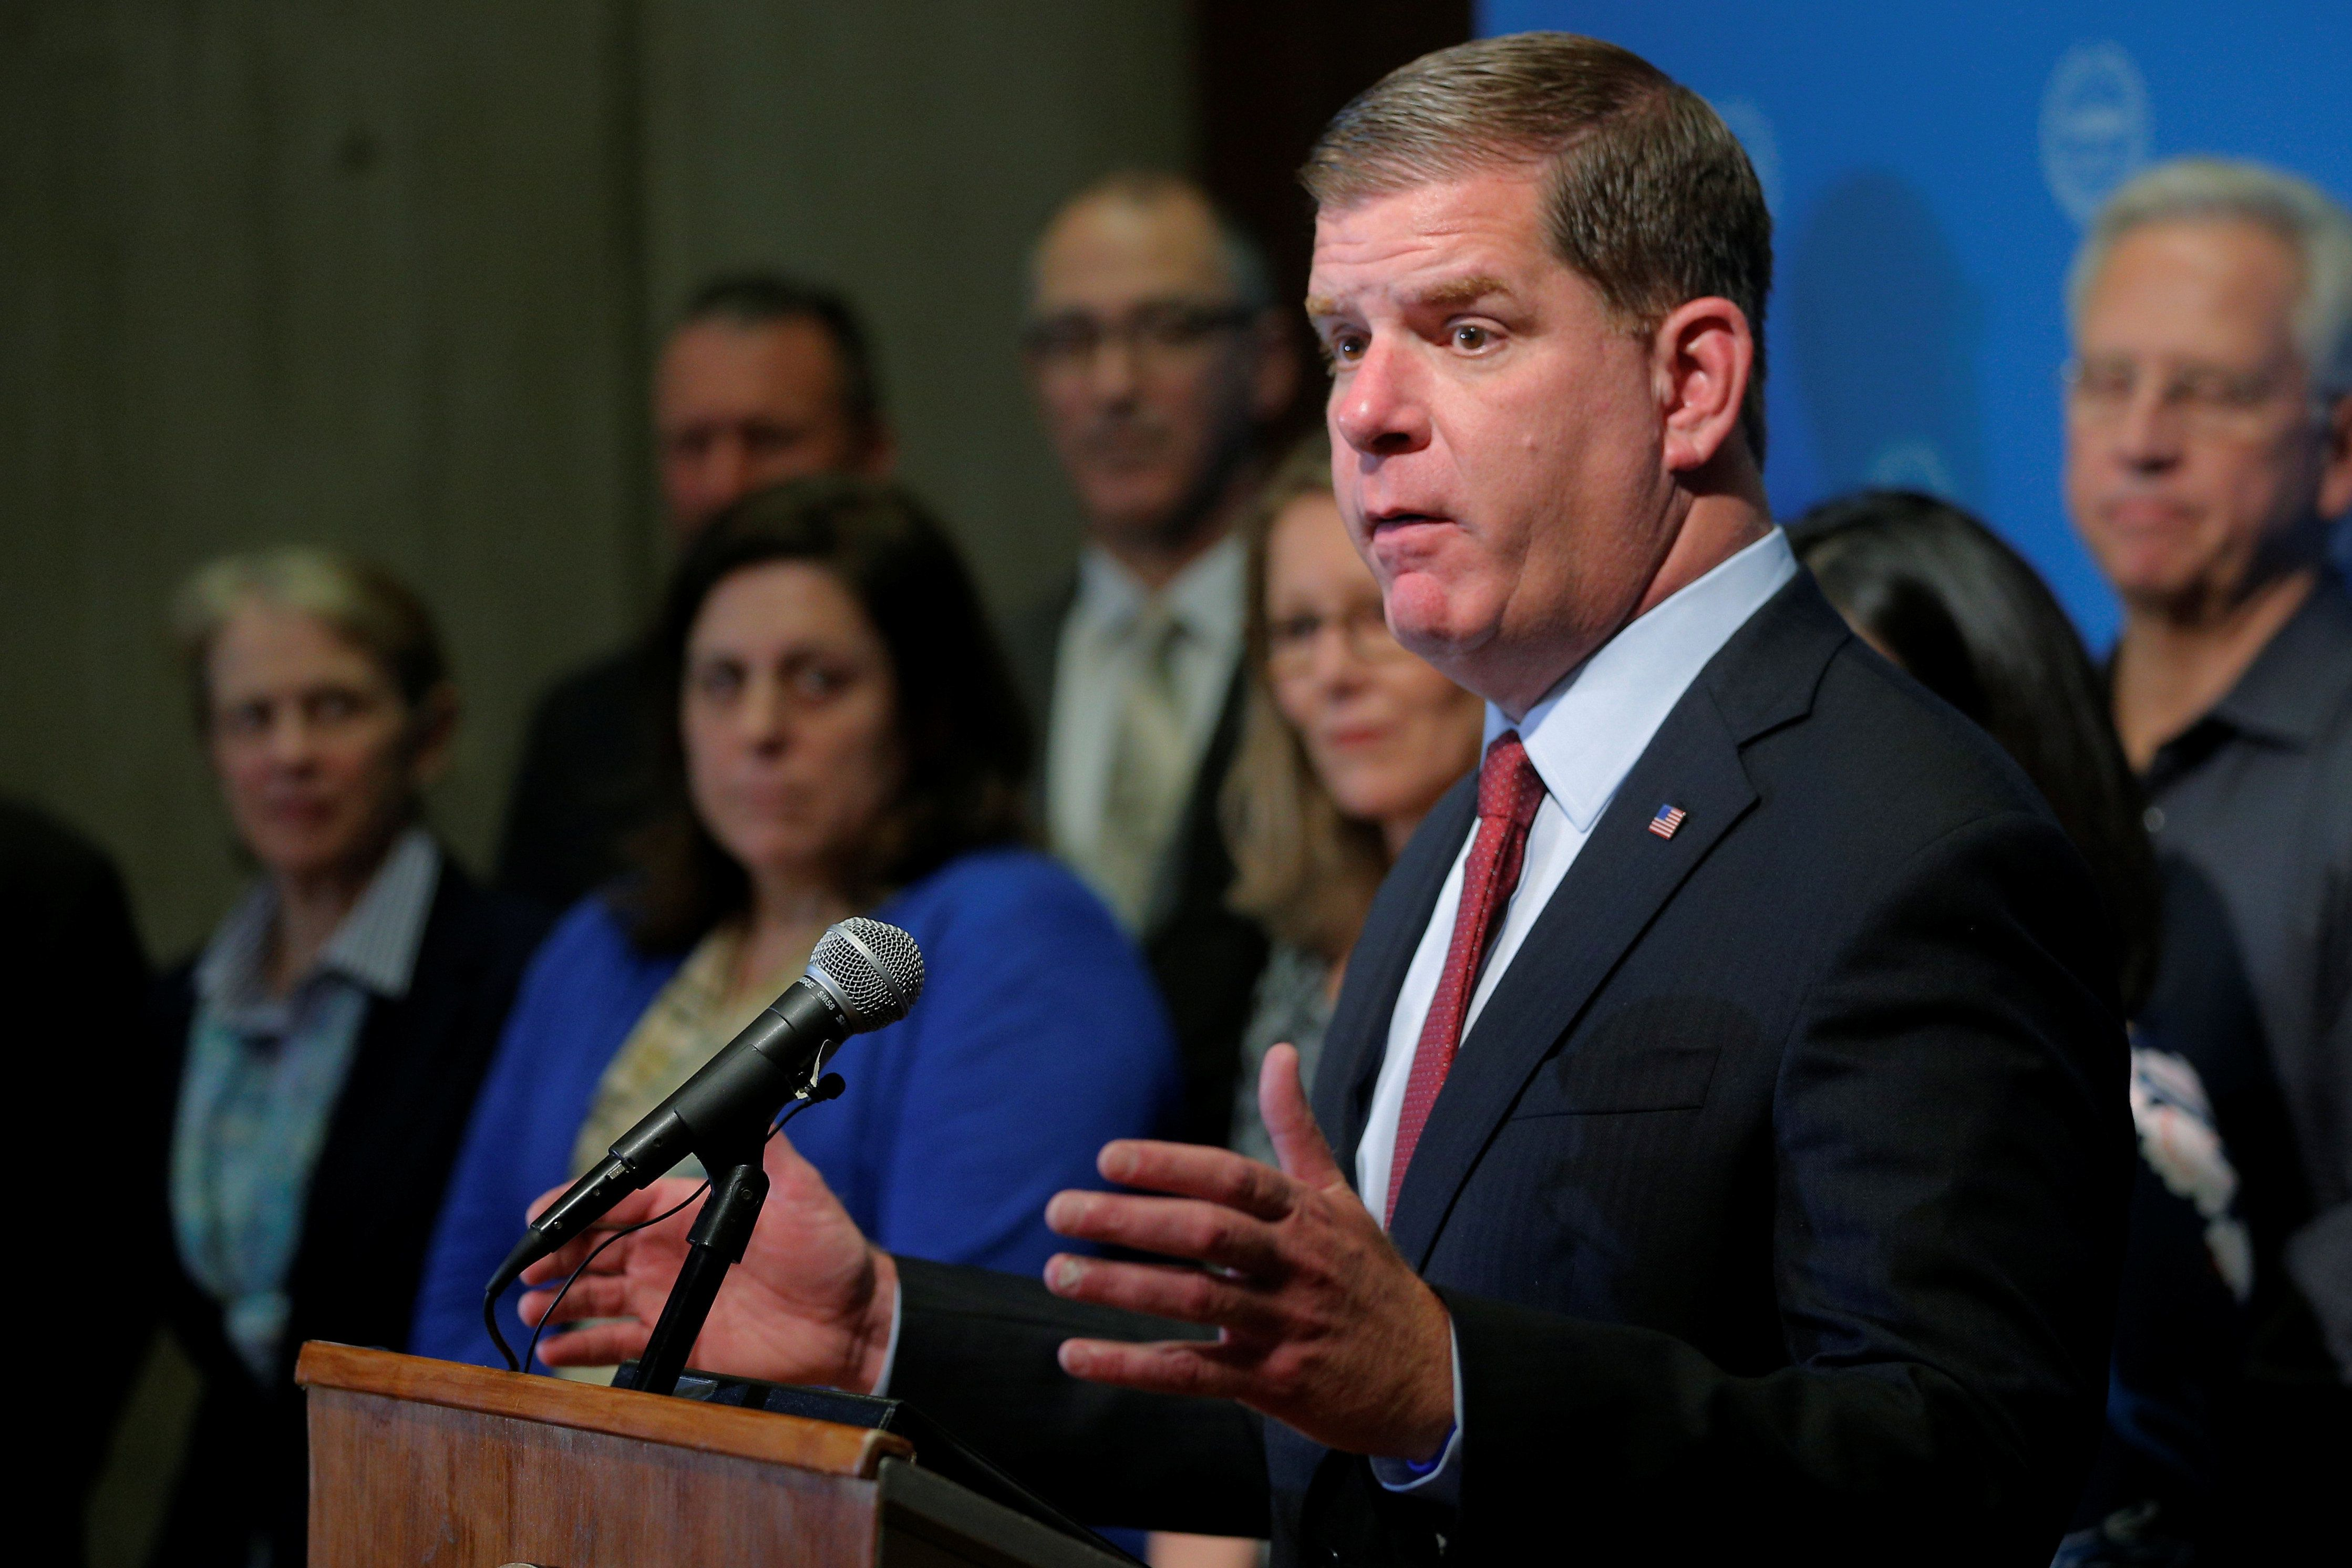 Boston Mayor Marty Walsh tries to persuadePresident Donald Trump not to withdraw from the Paris...